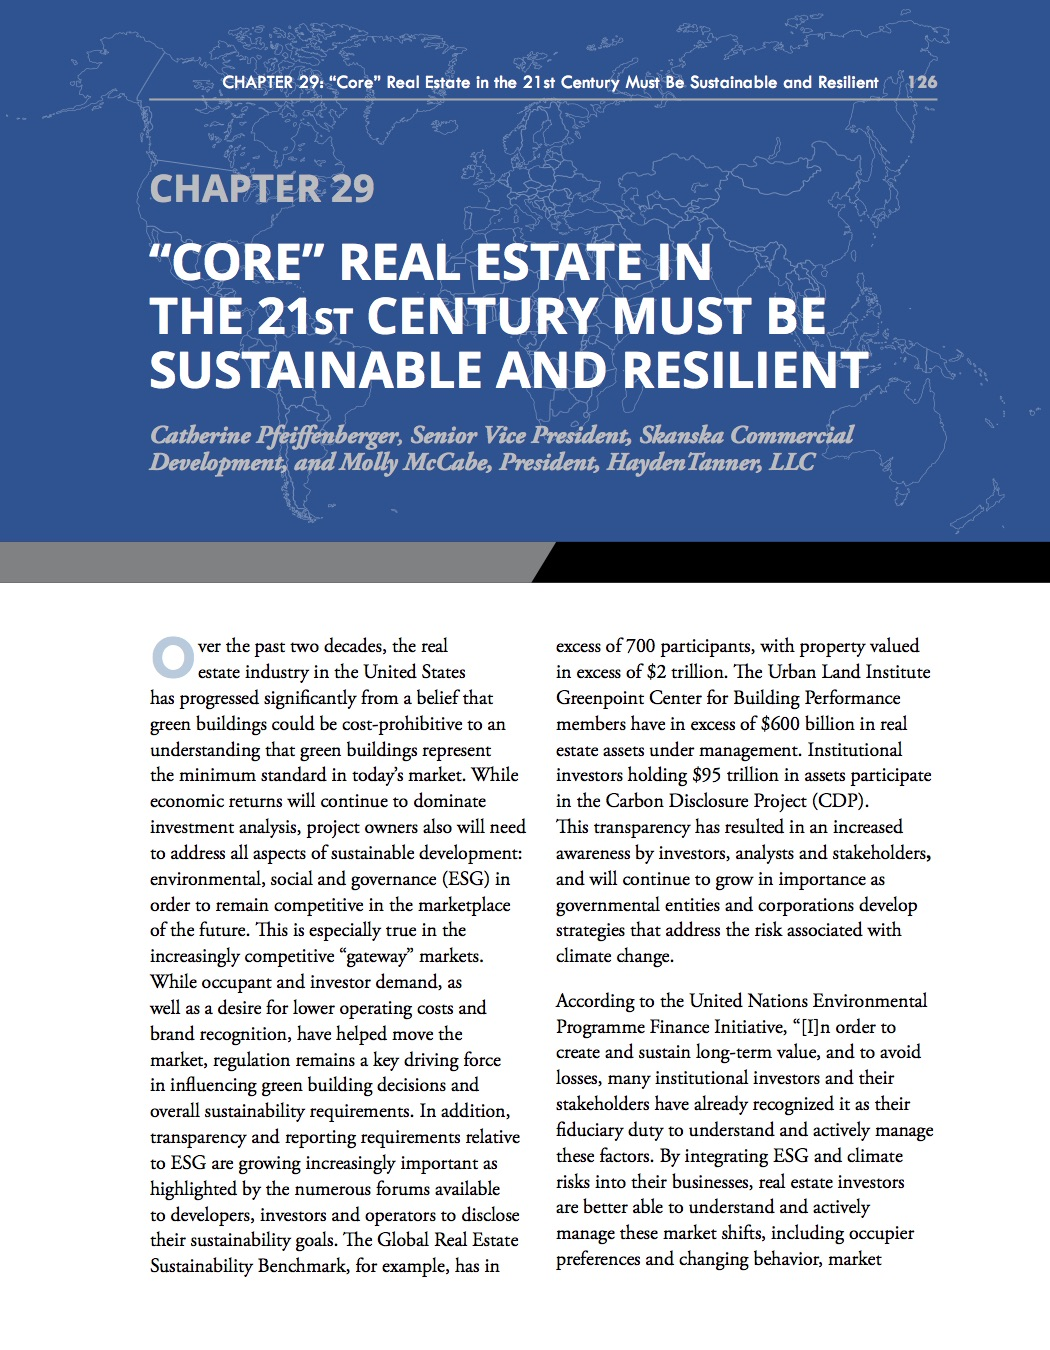 AFIRE Core Real Estate Sustainable